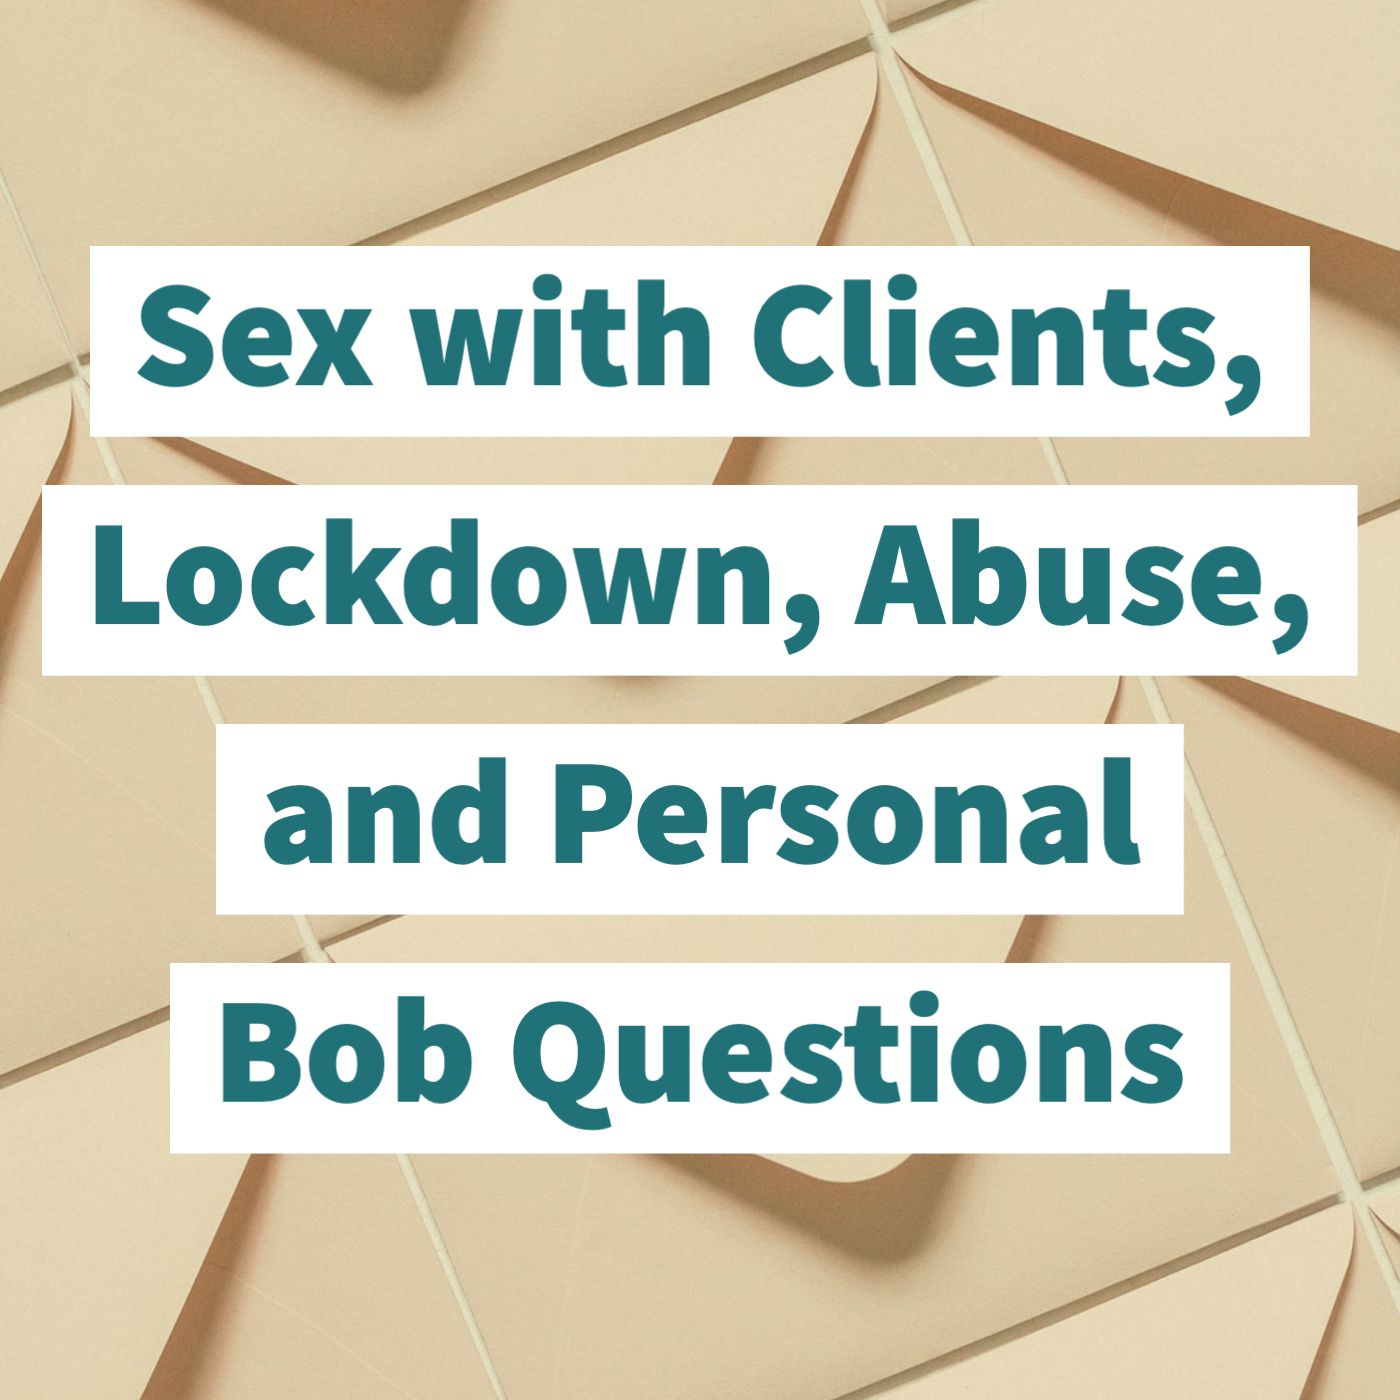 Sex with Clients, Lockdown, Abuse, and Personal Bob Questions